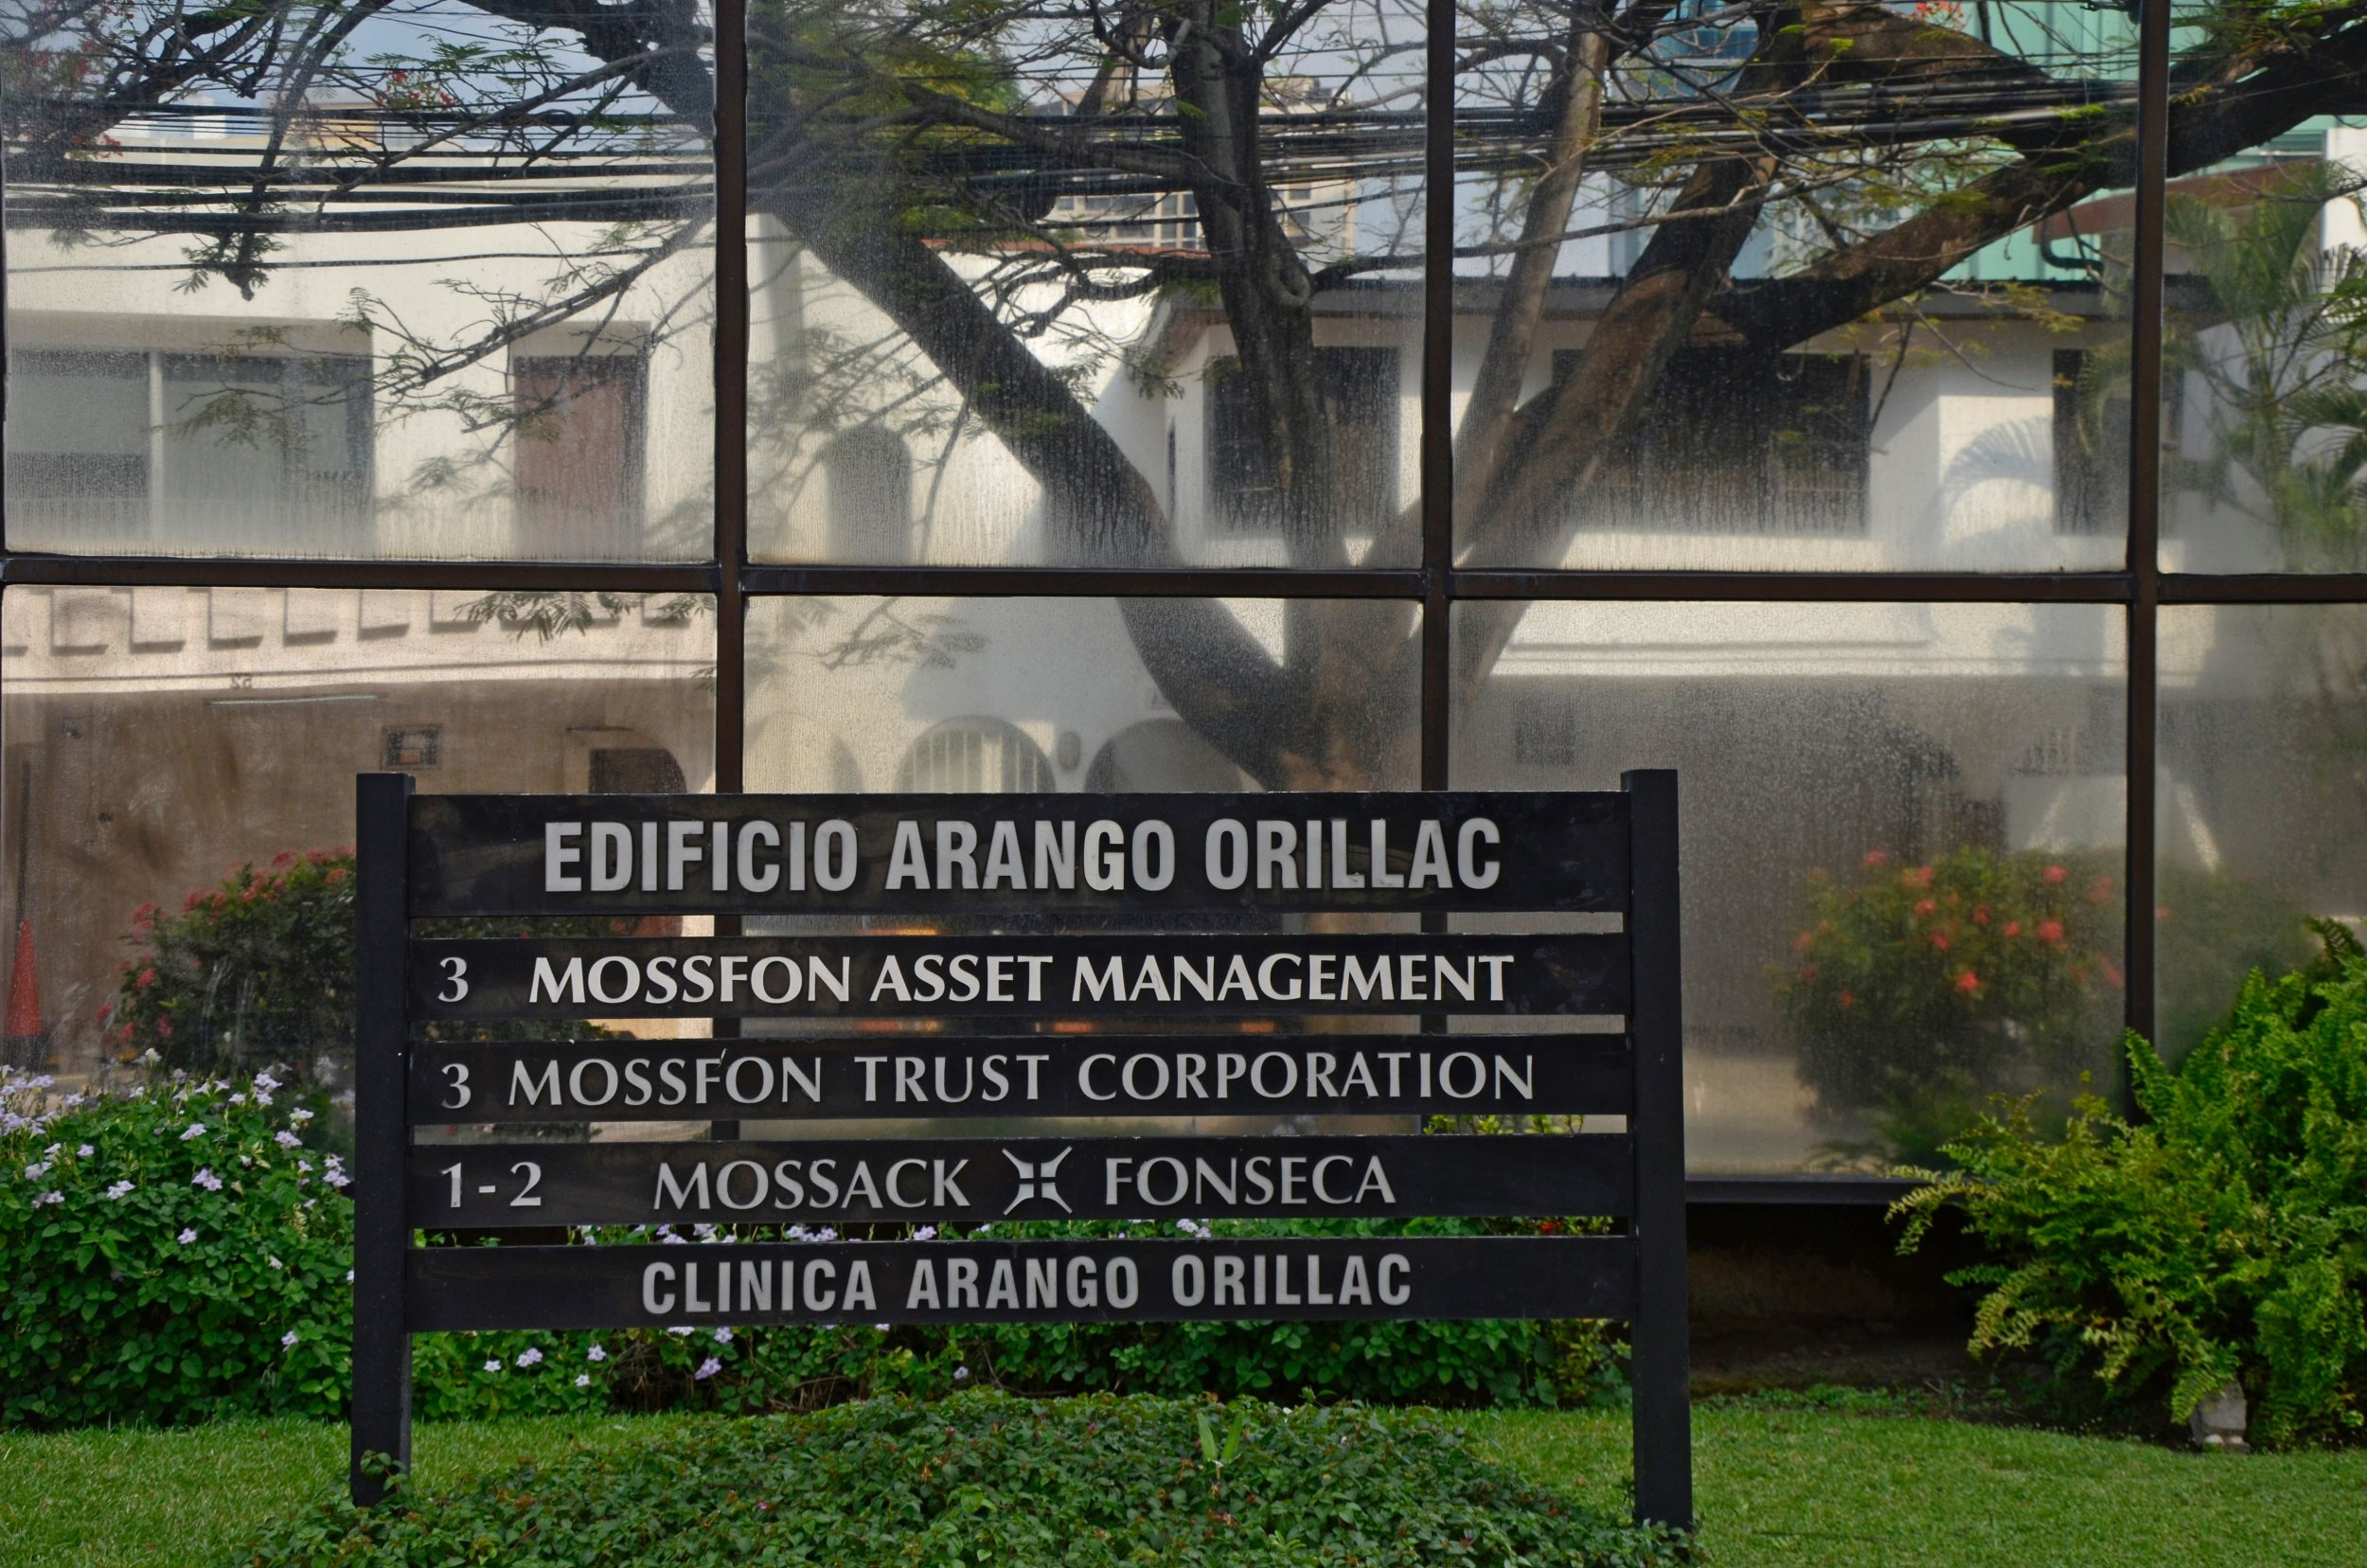 A sign outside the offices of Mossack Fonseca, the law firm connected to the Panama Papers.